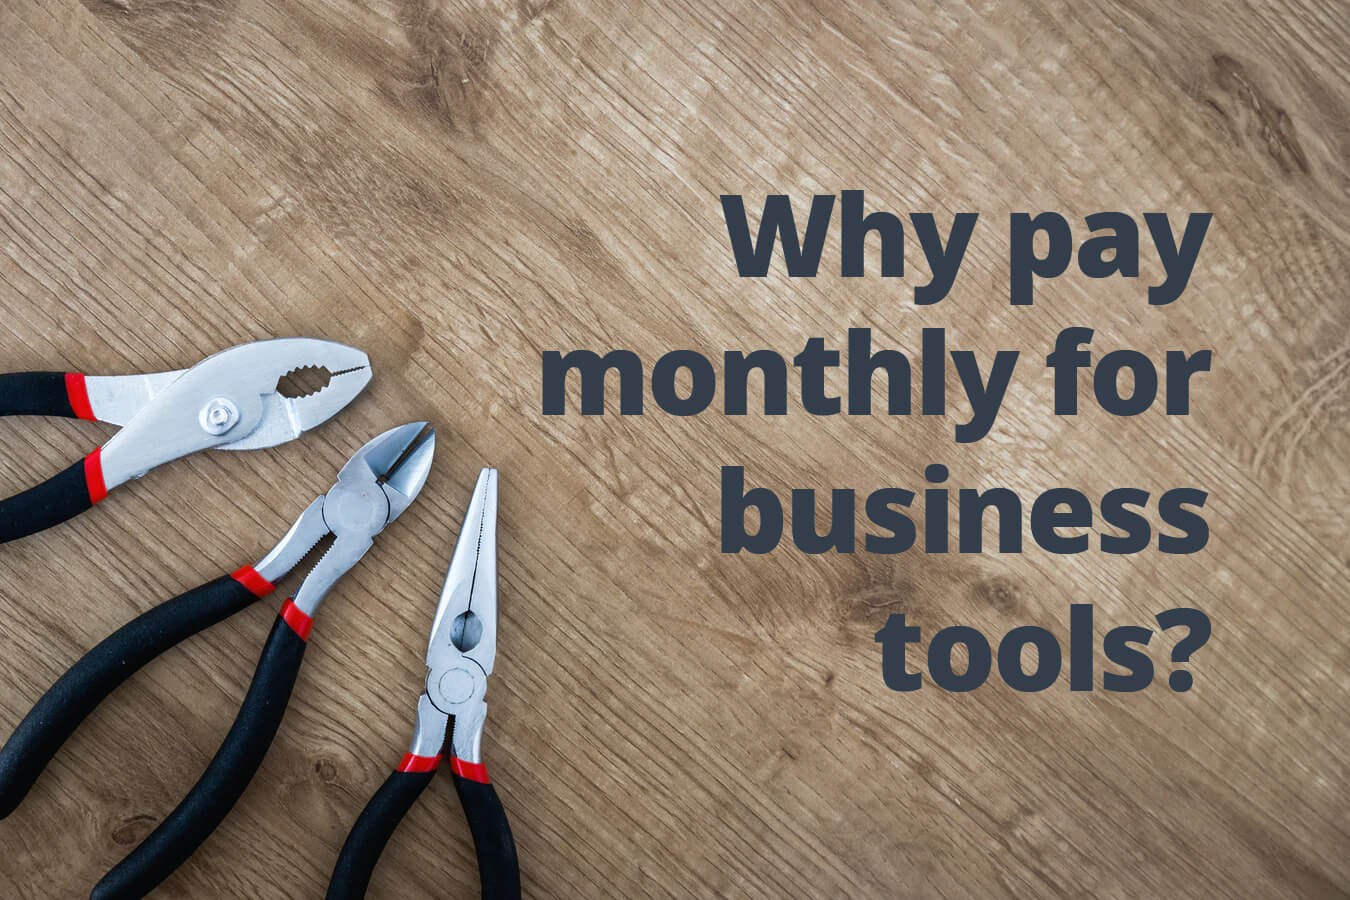 Why pay monthly for business tools?